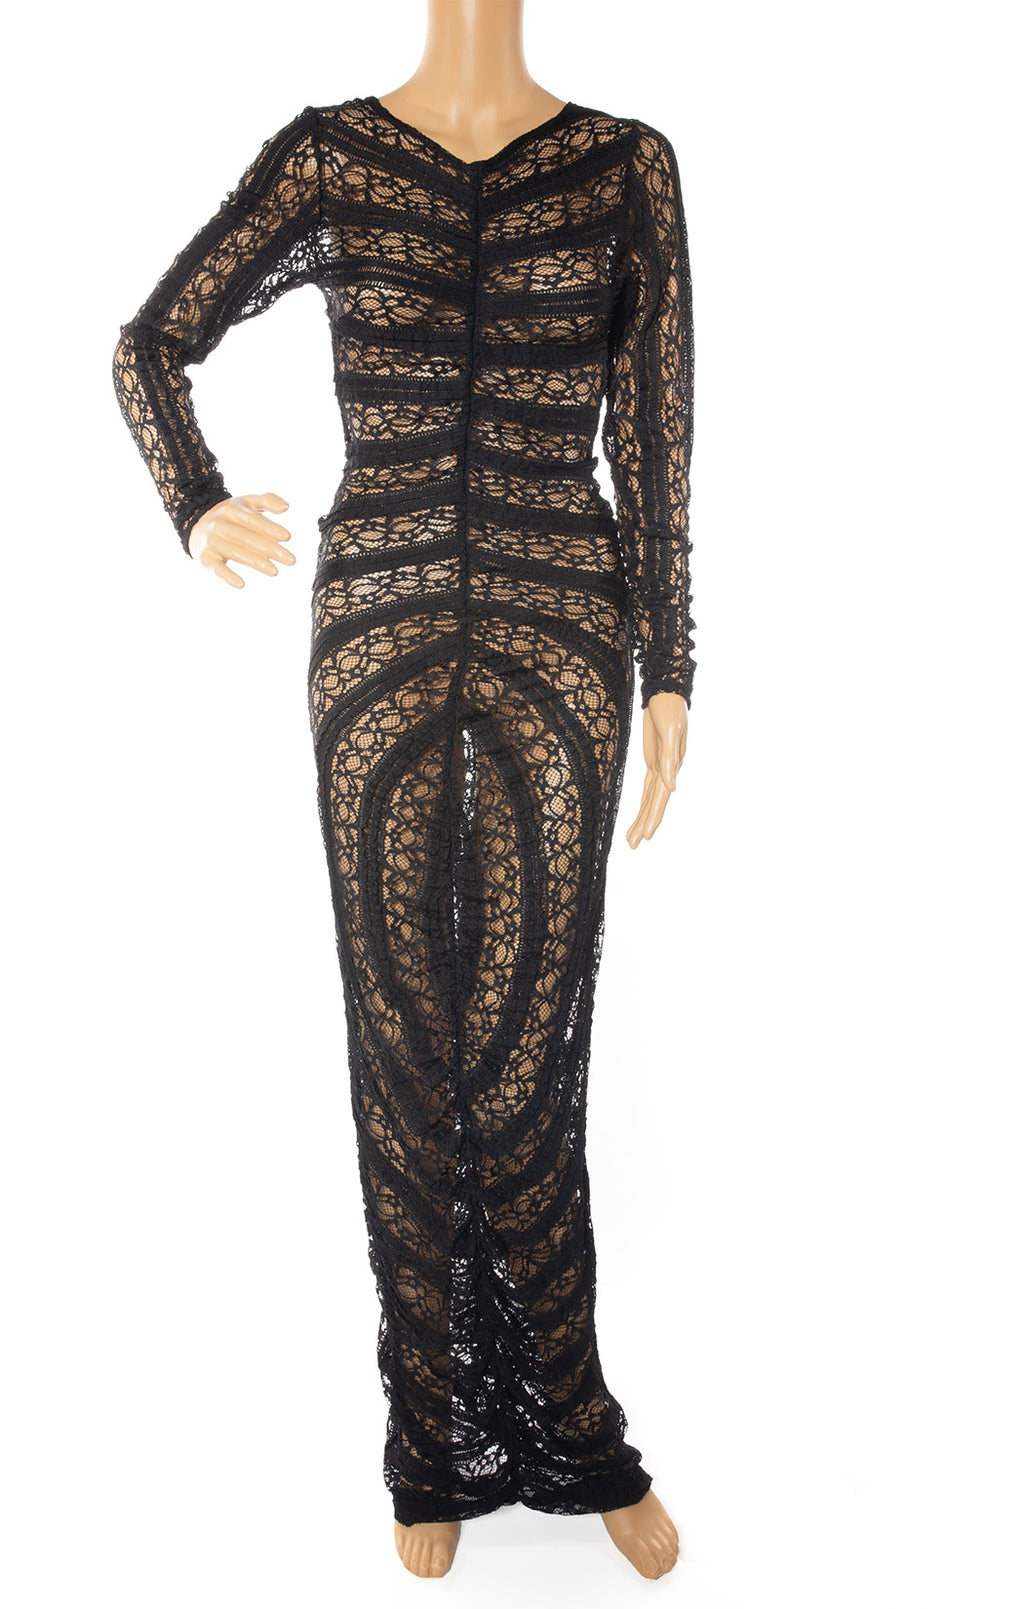 Front view of SANYAE DEMURE Long lace dress Size: no tags fits like Small